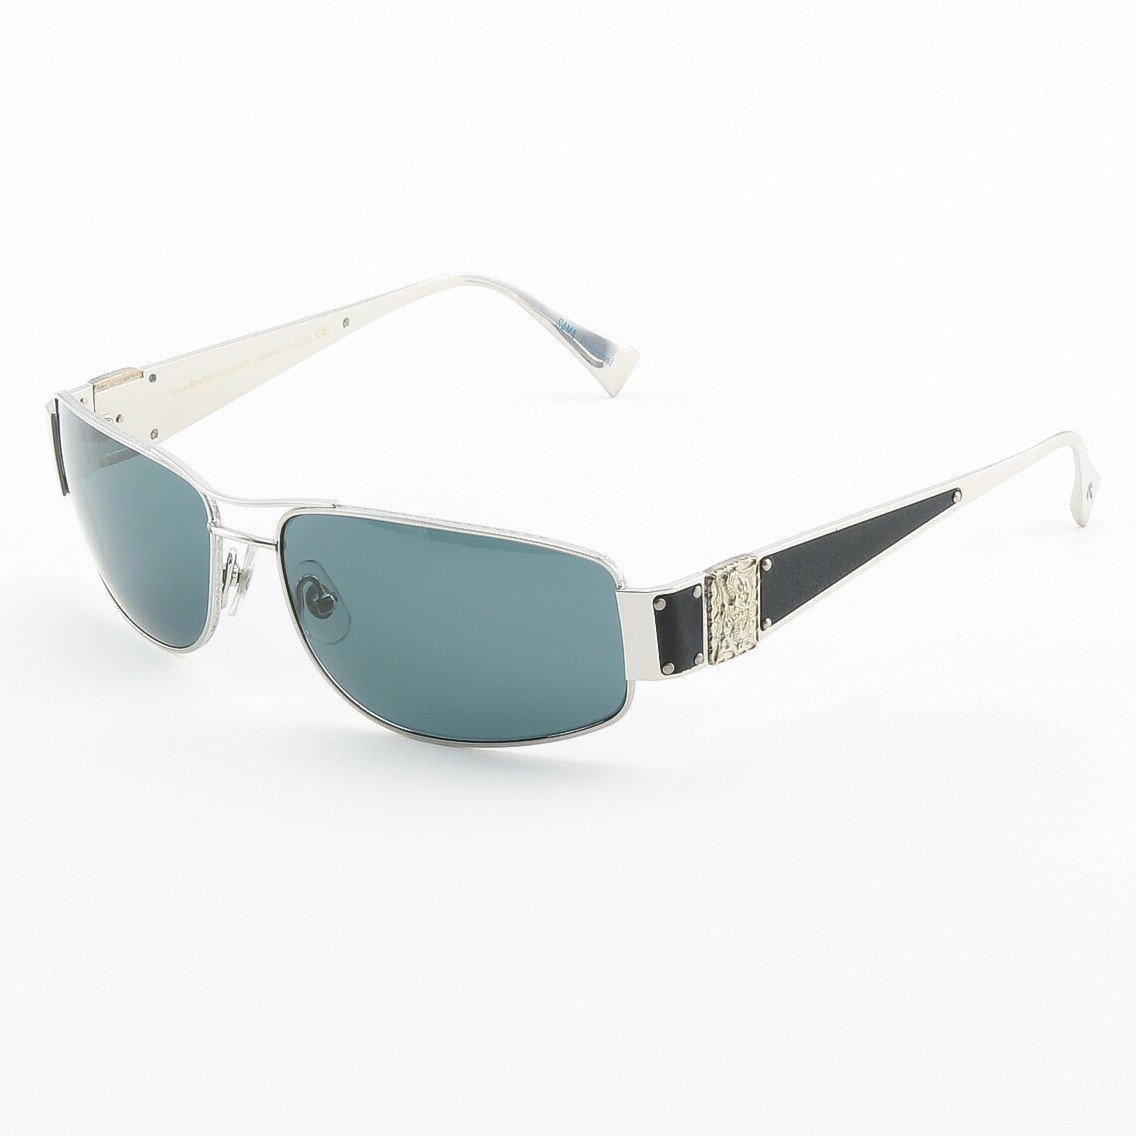 Loree Rodkin Chad Sunglasses by Sama Col. Platinum with Gray Lenses, Leather and Sterling Silver